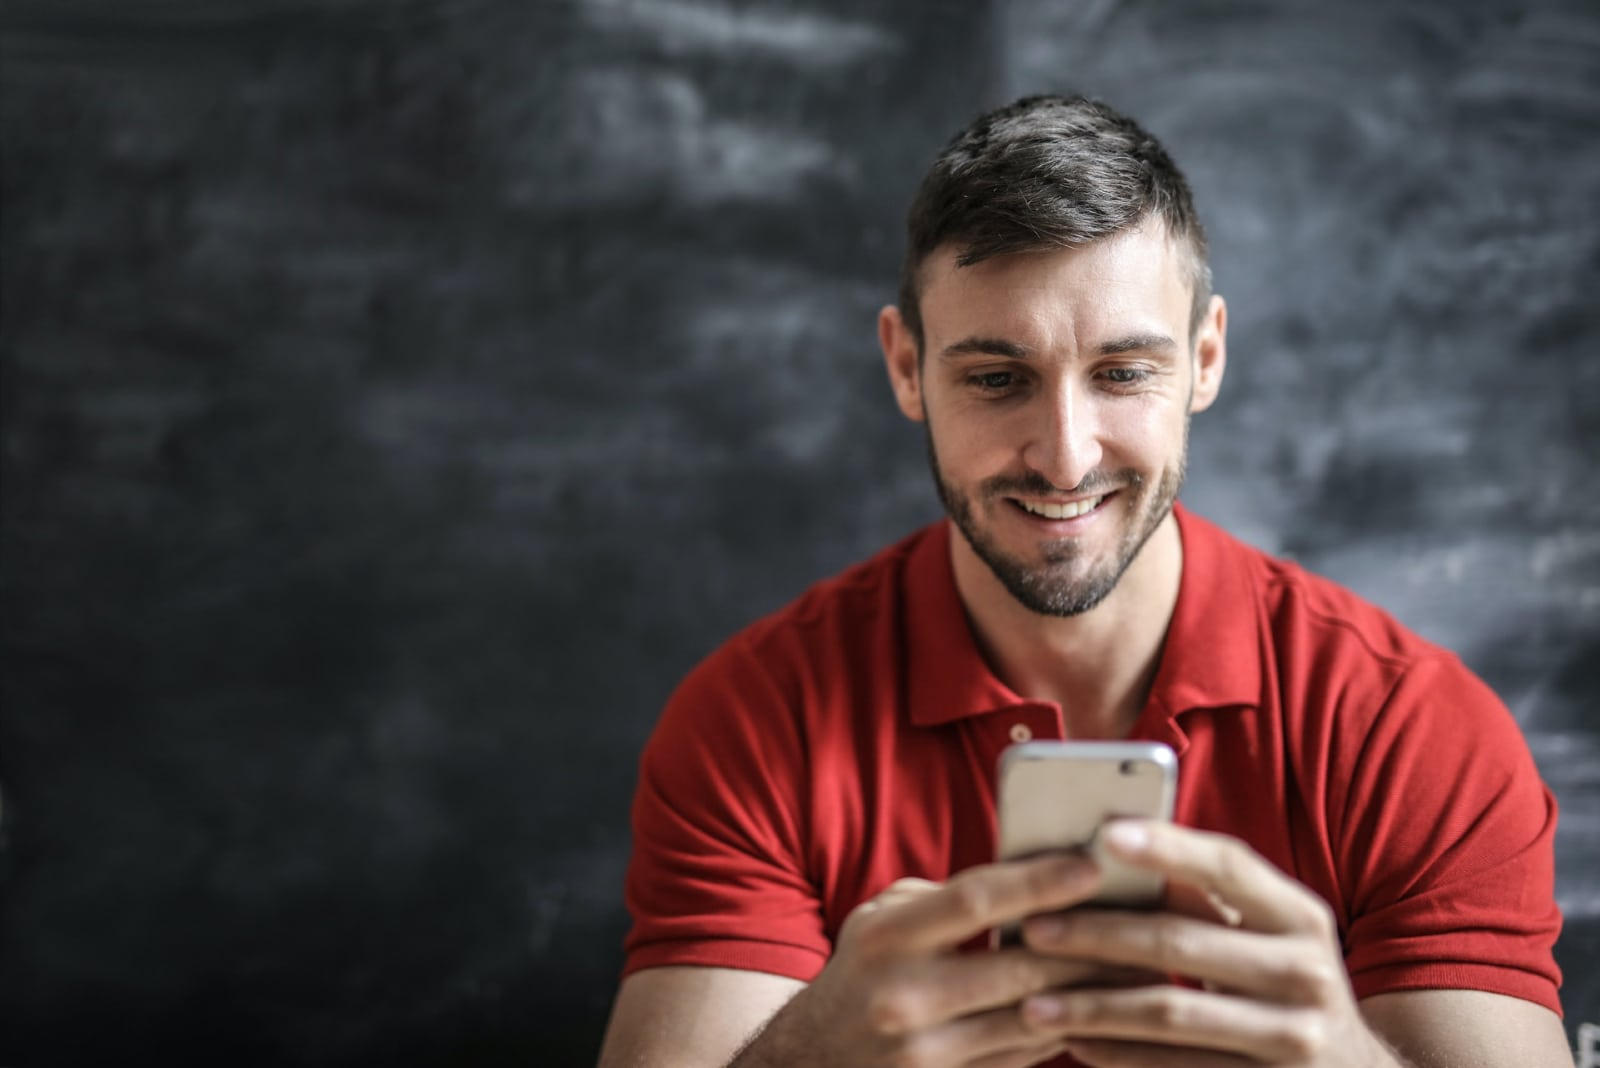 man in red polo shirt using smartphone